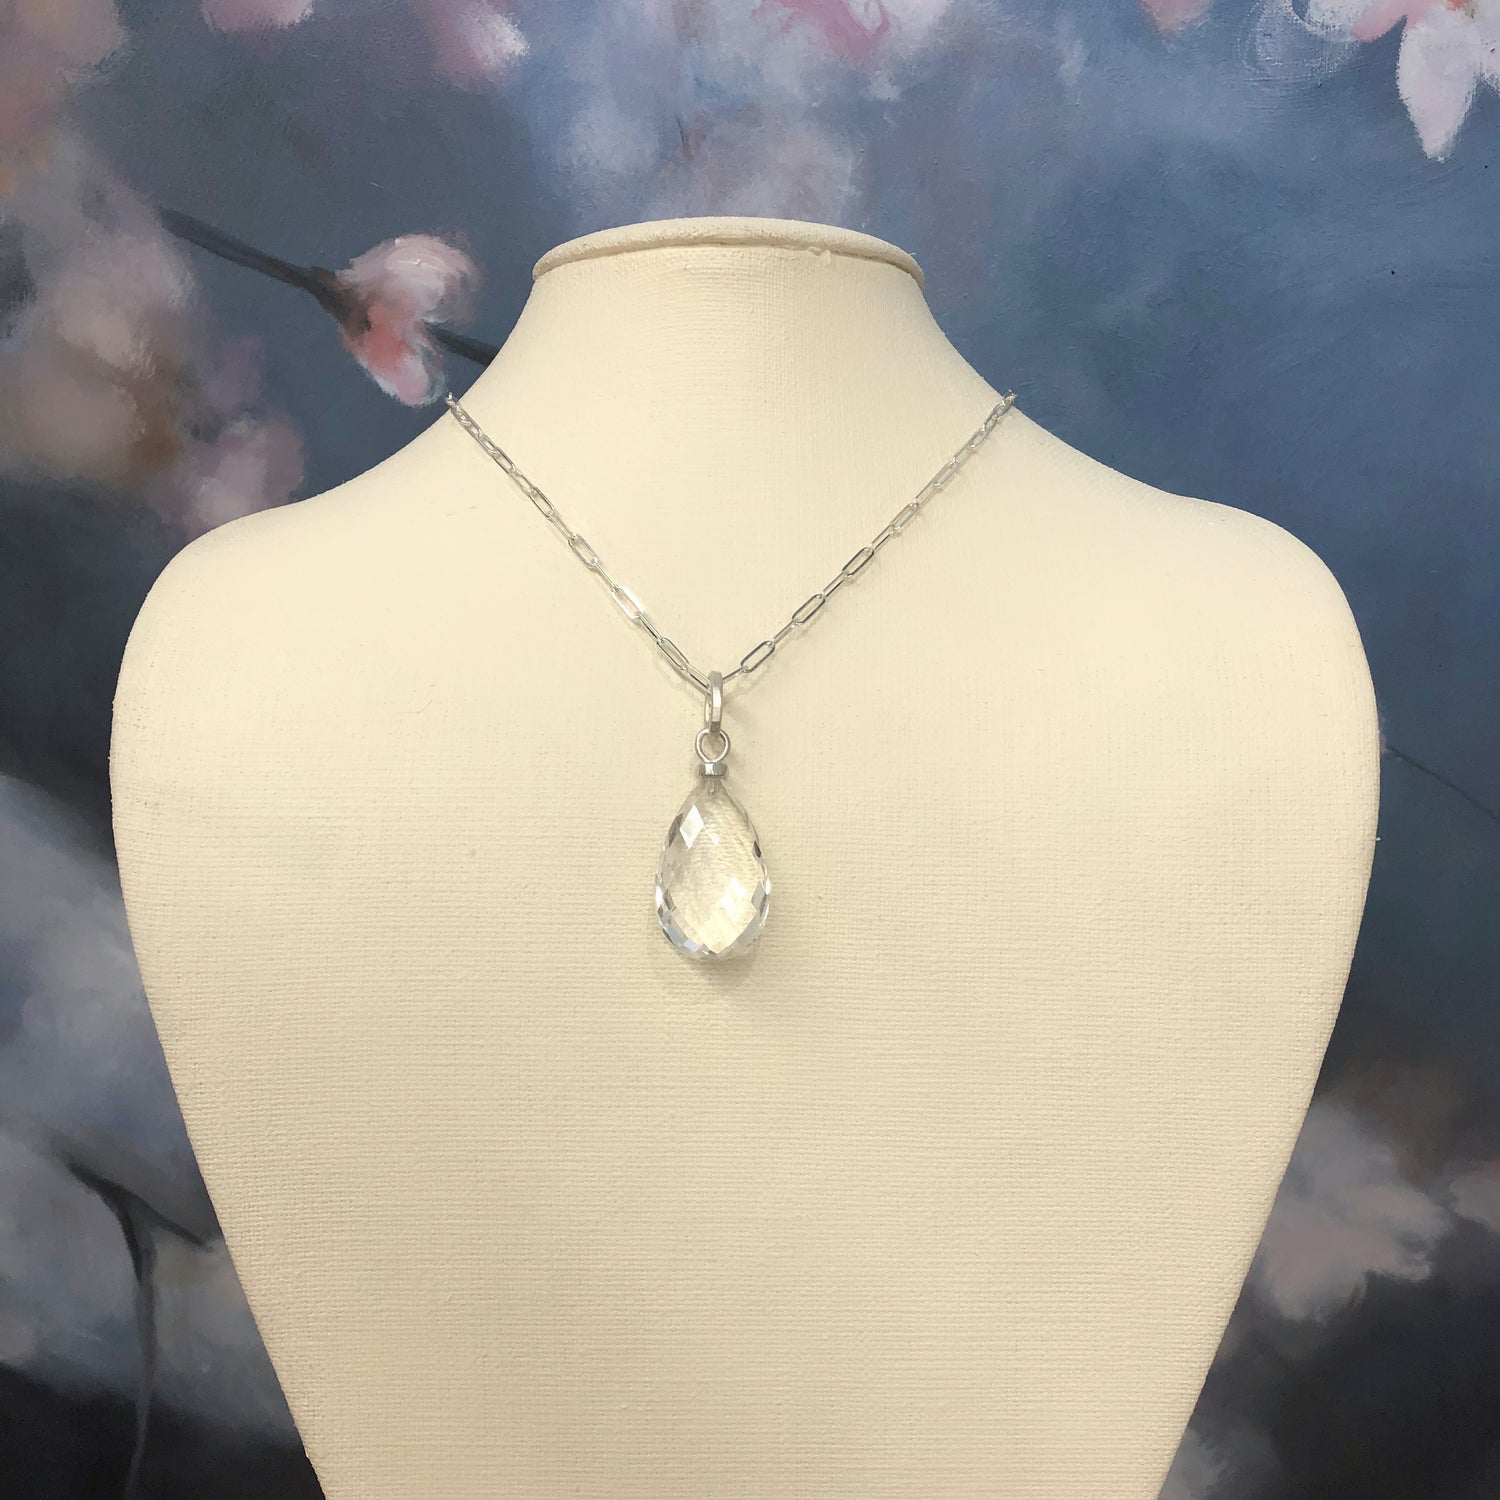 Teardrop Crystal Quartz Pendant